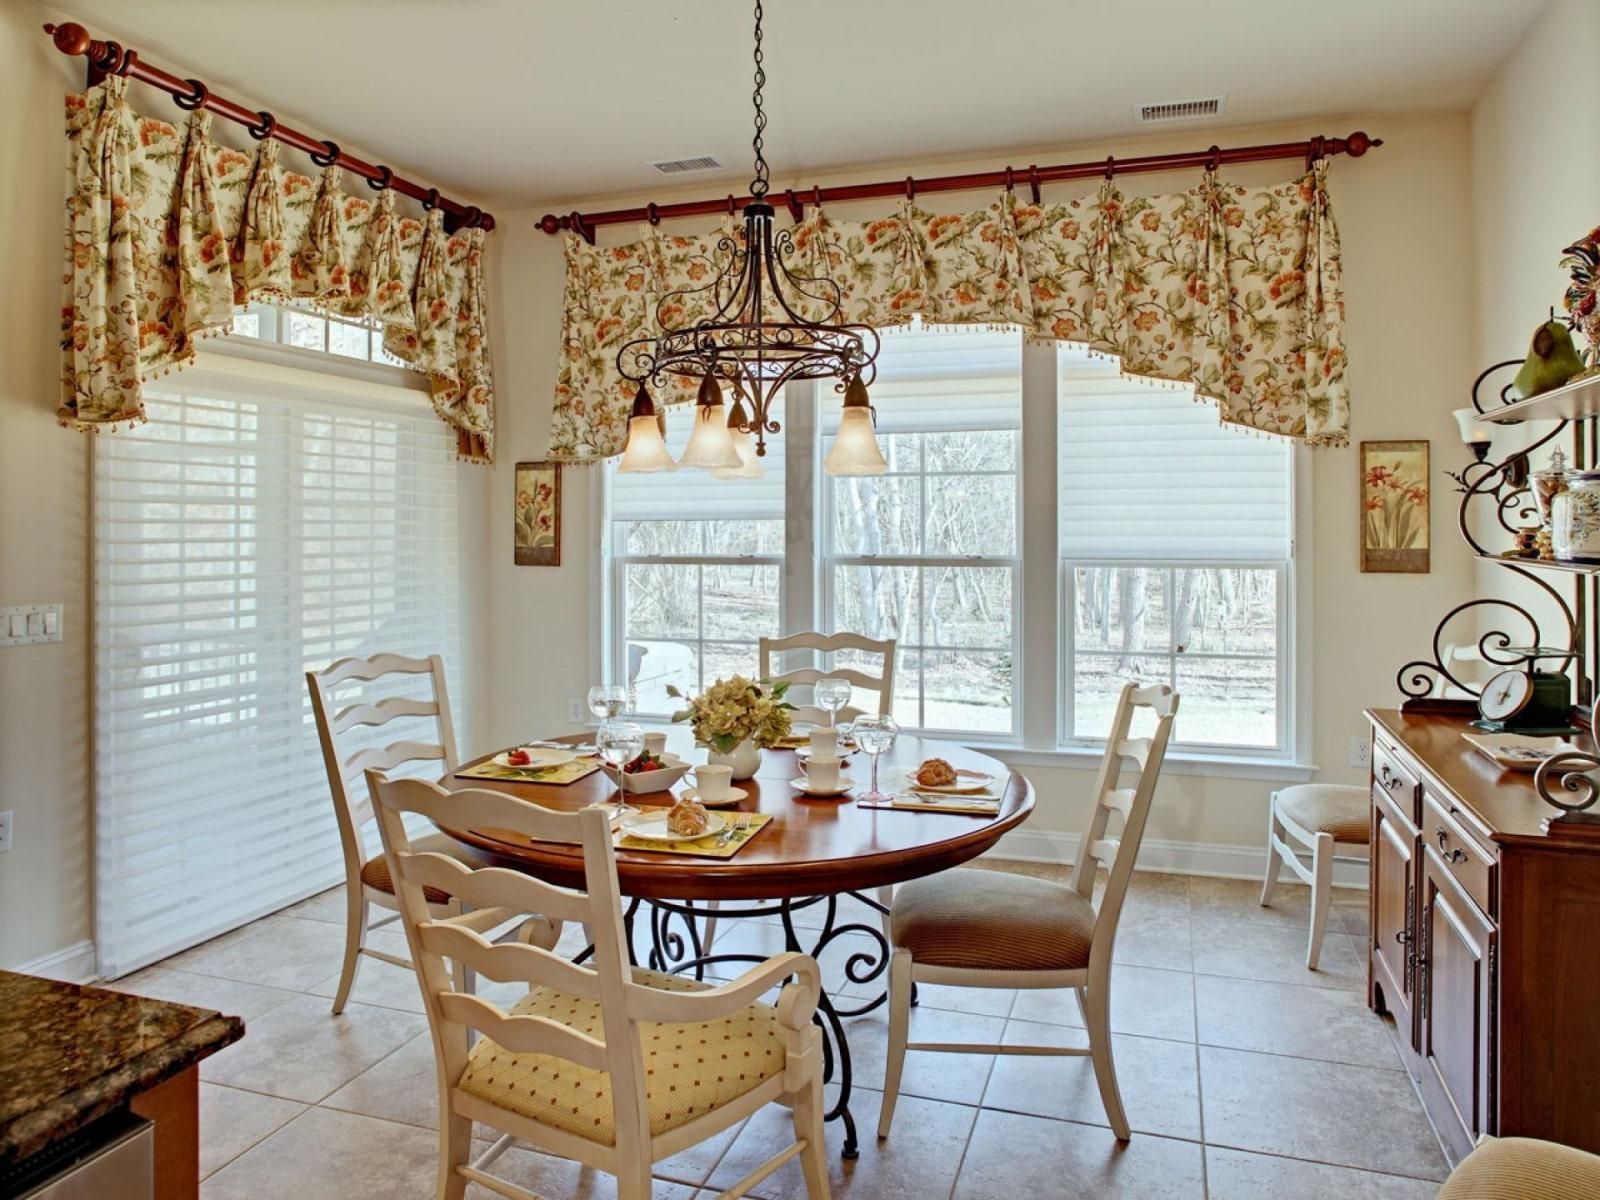 country-style kitchen-dining room with a wrought-iron pendant chandelier above the dining area.